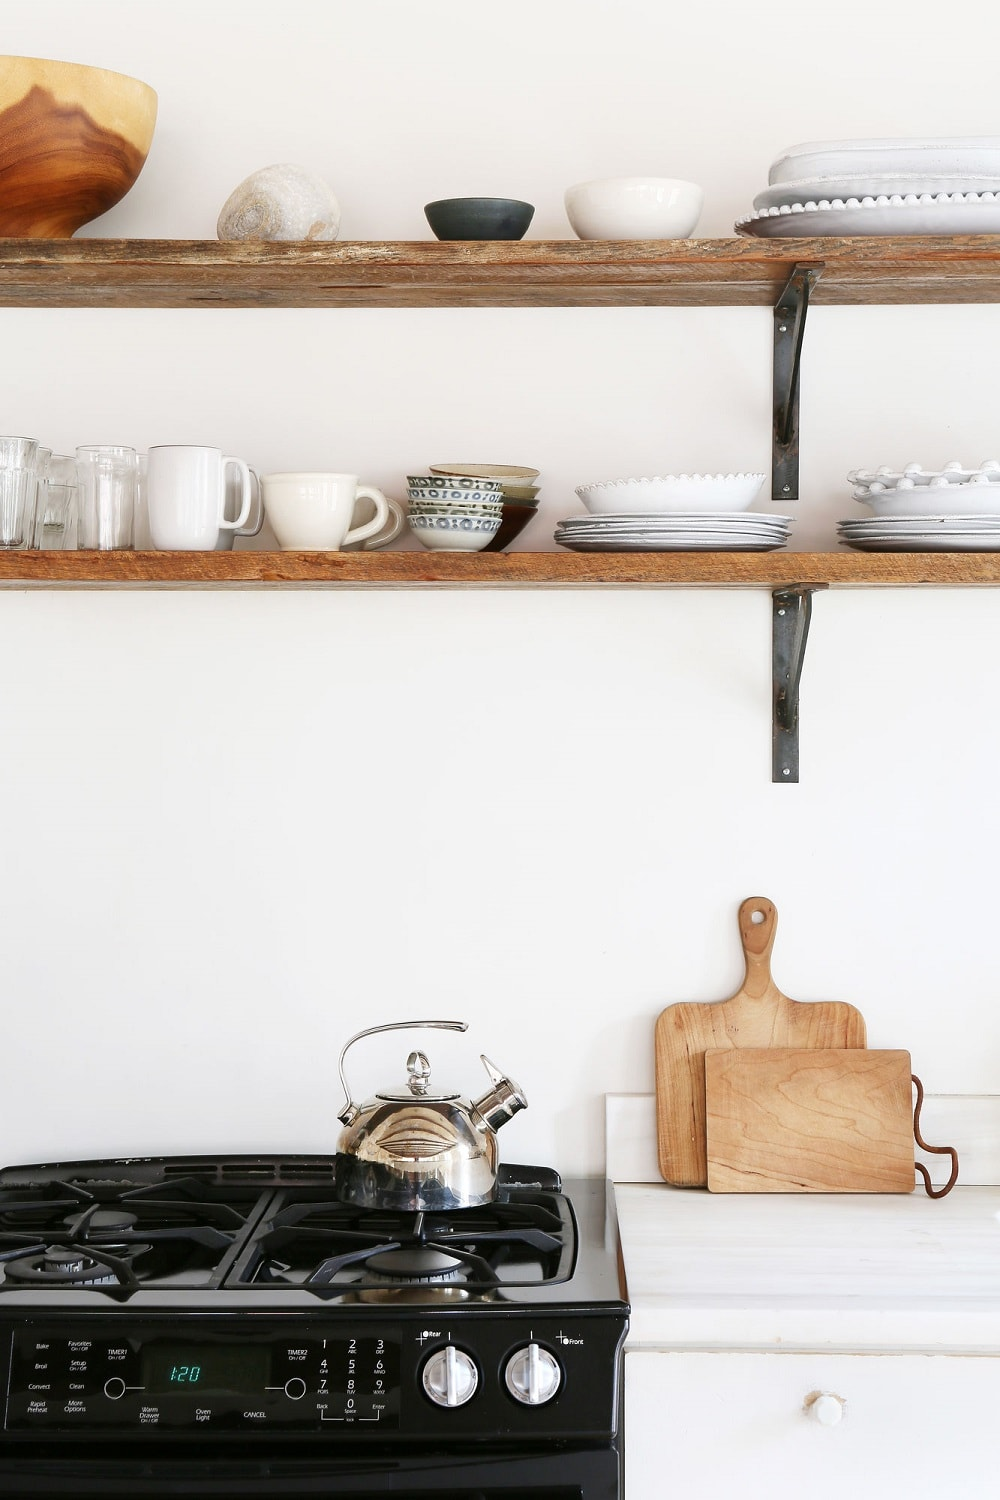 Open Shelves Kitchen decorated with Ceramics - Loft Apartment, Lower East Side, Manhattan, New York